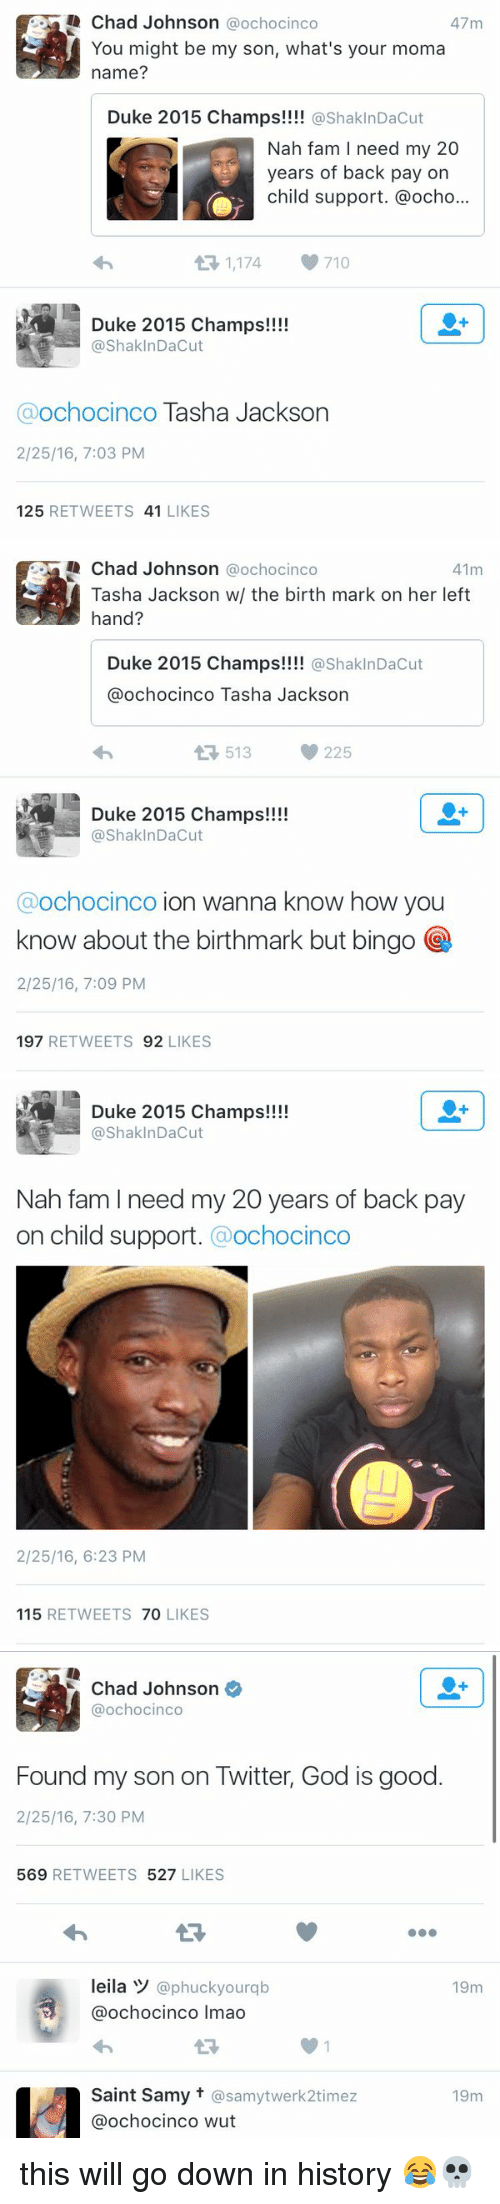 Child Support, Fam, and God: Chad Johnson ochocinco  47m  You might be my son, what's your moma  name?  Duke 2015 Champs  ShaklnDacut  Nah fam I need my 20  years of back pay on  child support. @ocho...  1,174  710  Duke 2015 Champs!!!!  @Shak InDacut  a ochocinco Tasha Jackson  2/25/16, 7:03 PM  125  RETWEETS 41  LIKES   Chad Johnson  @ochocinco  41m  Tasha Jackson w/ the birth mark on her left  hand  Duke 2015 Champs!!!!  ShakInDacut  @ochocinco Tasha Jackson  13, 513 225  Duke 2015 Champs!!!!  @ShaklnDacut  ochocinco ion wanna know how you  know about the birthmark but bingo  2/25/16, 7:09 PM  197  RETWEETS  92  LIKES   Duke 2015 Champs!  @Shak Dacut  Nah fam I need my 20 years of back pay  on child support  Ochocinco  2/25/16, 6:23 PM  115  RETWEETS  70  LIKES   Chad Johnson  Ca ochocinco  Found my son on Twitter, God is good.  2/25/16, 7:30 PM  569  RETWEETS  527  LIKES  leila y  @phuck yourqb  19m  ochocinco Imao  Saint Samy t @samytwerk2timez  19m  Ca ochocinco wut this will go down in history 😂💀